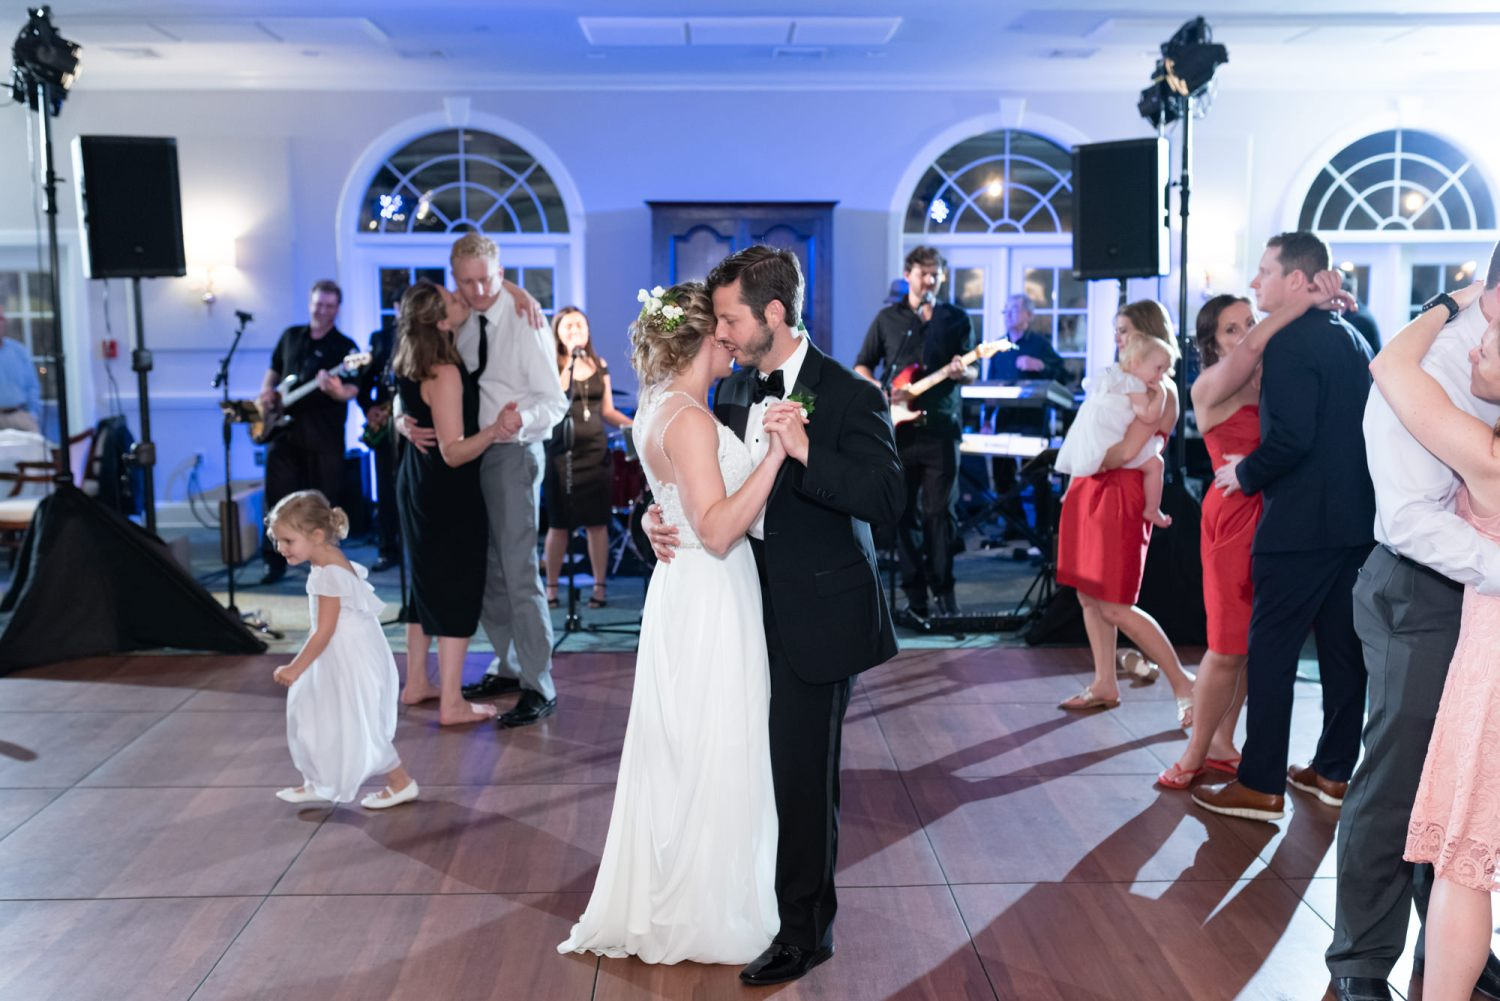 Bride and groom dancing - Wachesaw Plantation